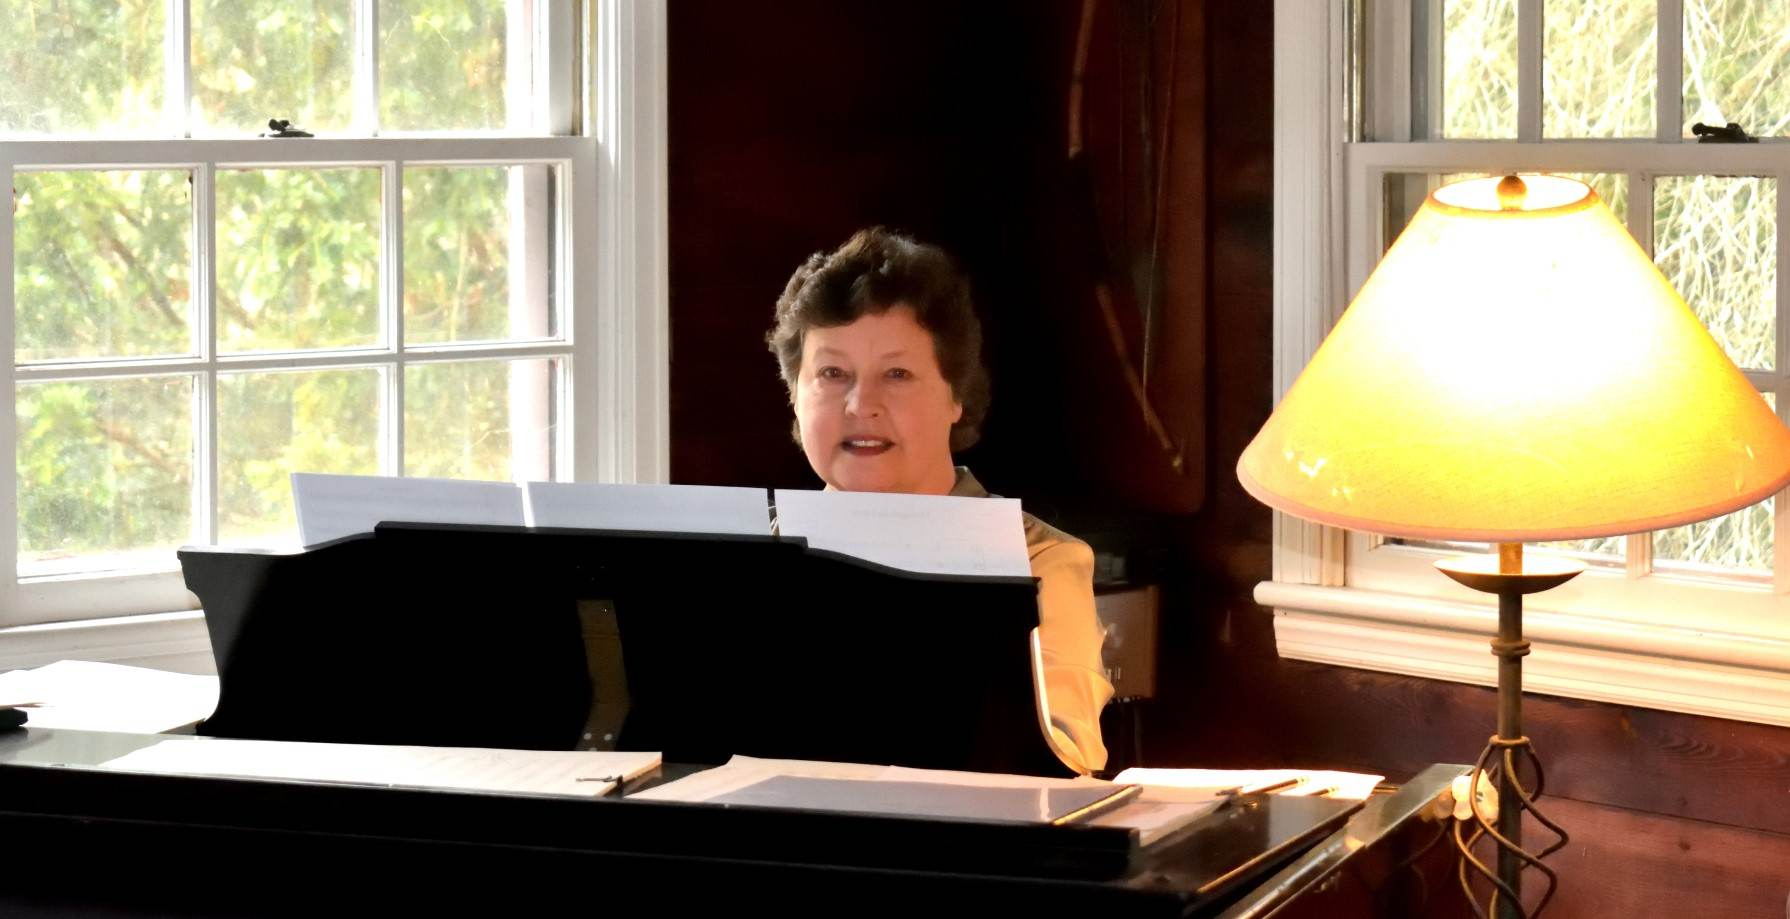 Composer Hilary Tann at the piano